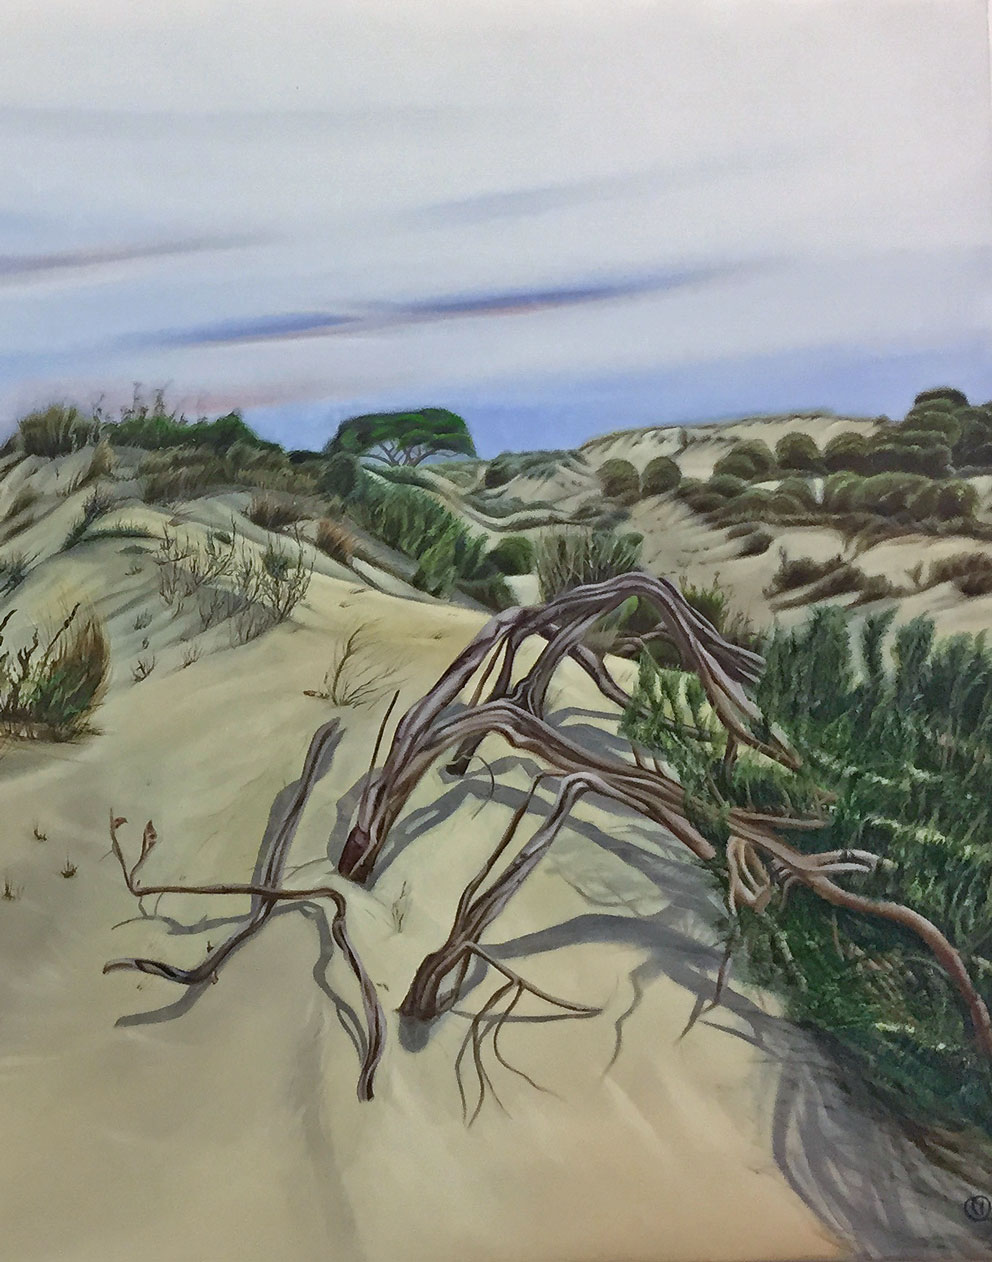 Pine tree left by the dune